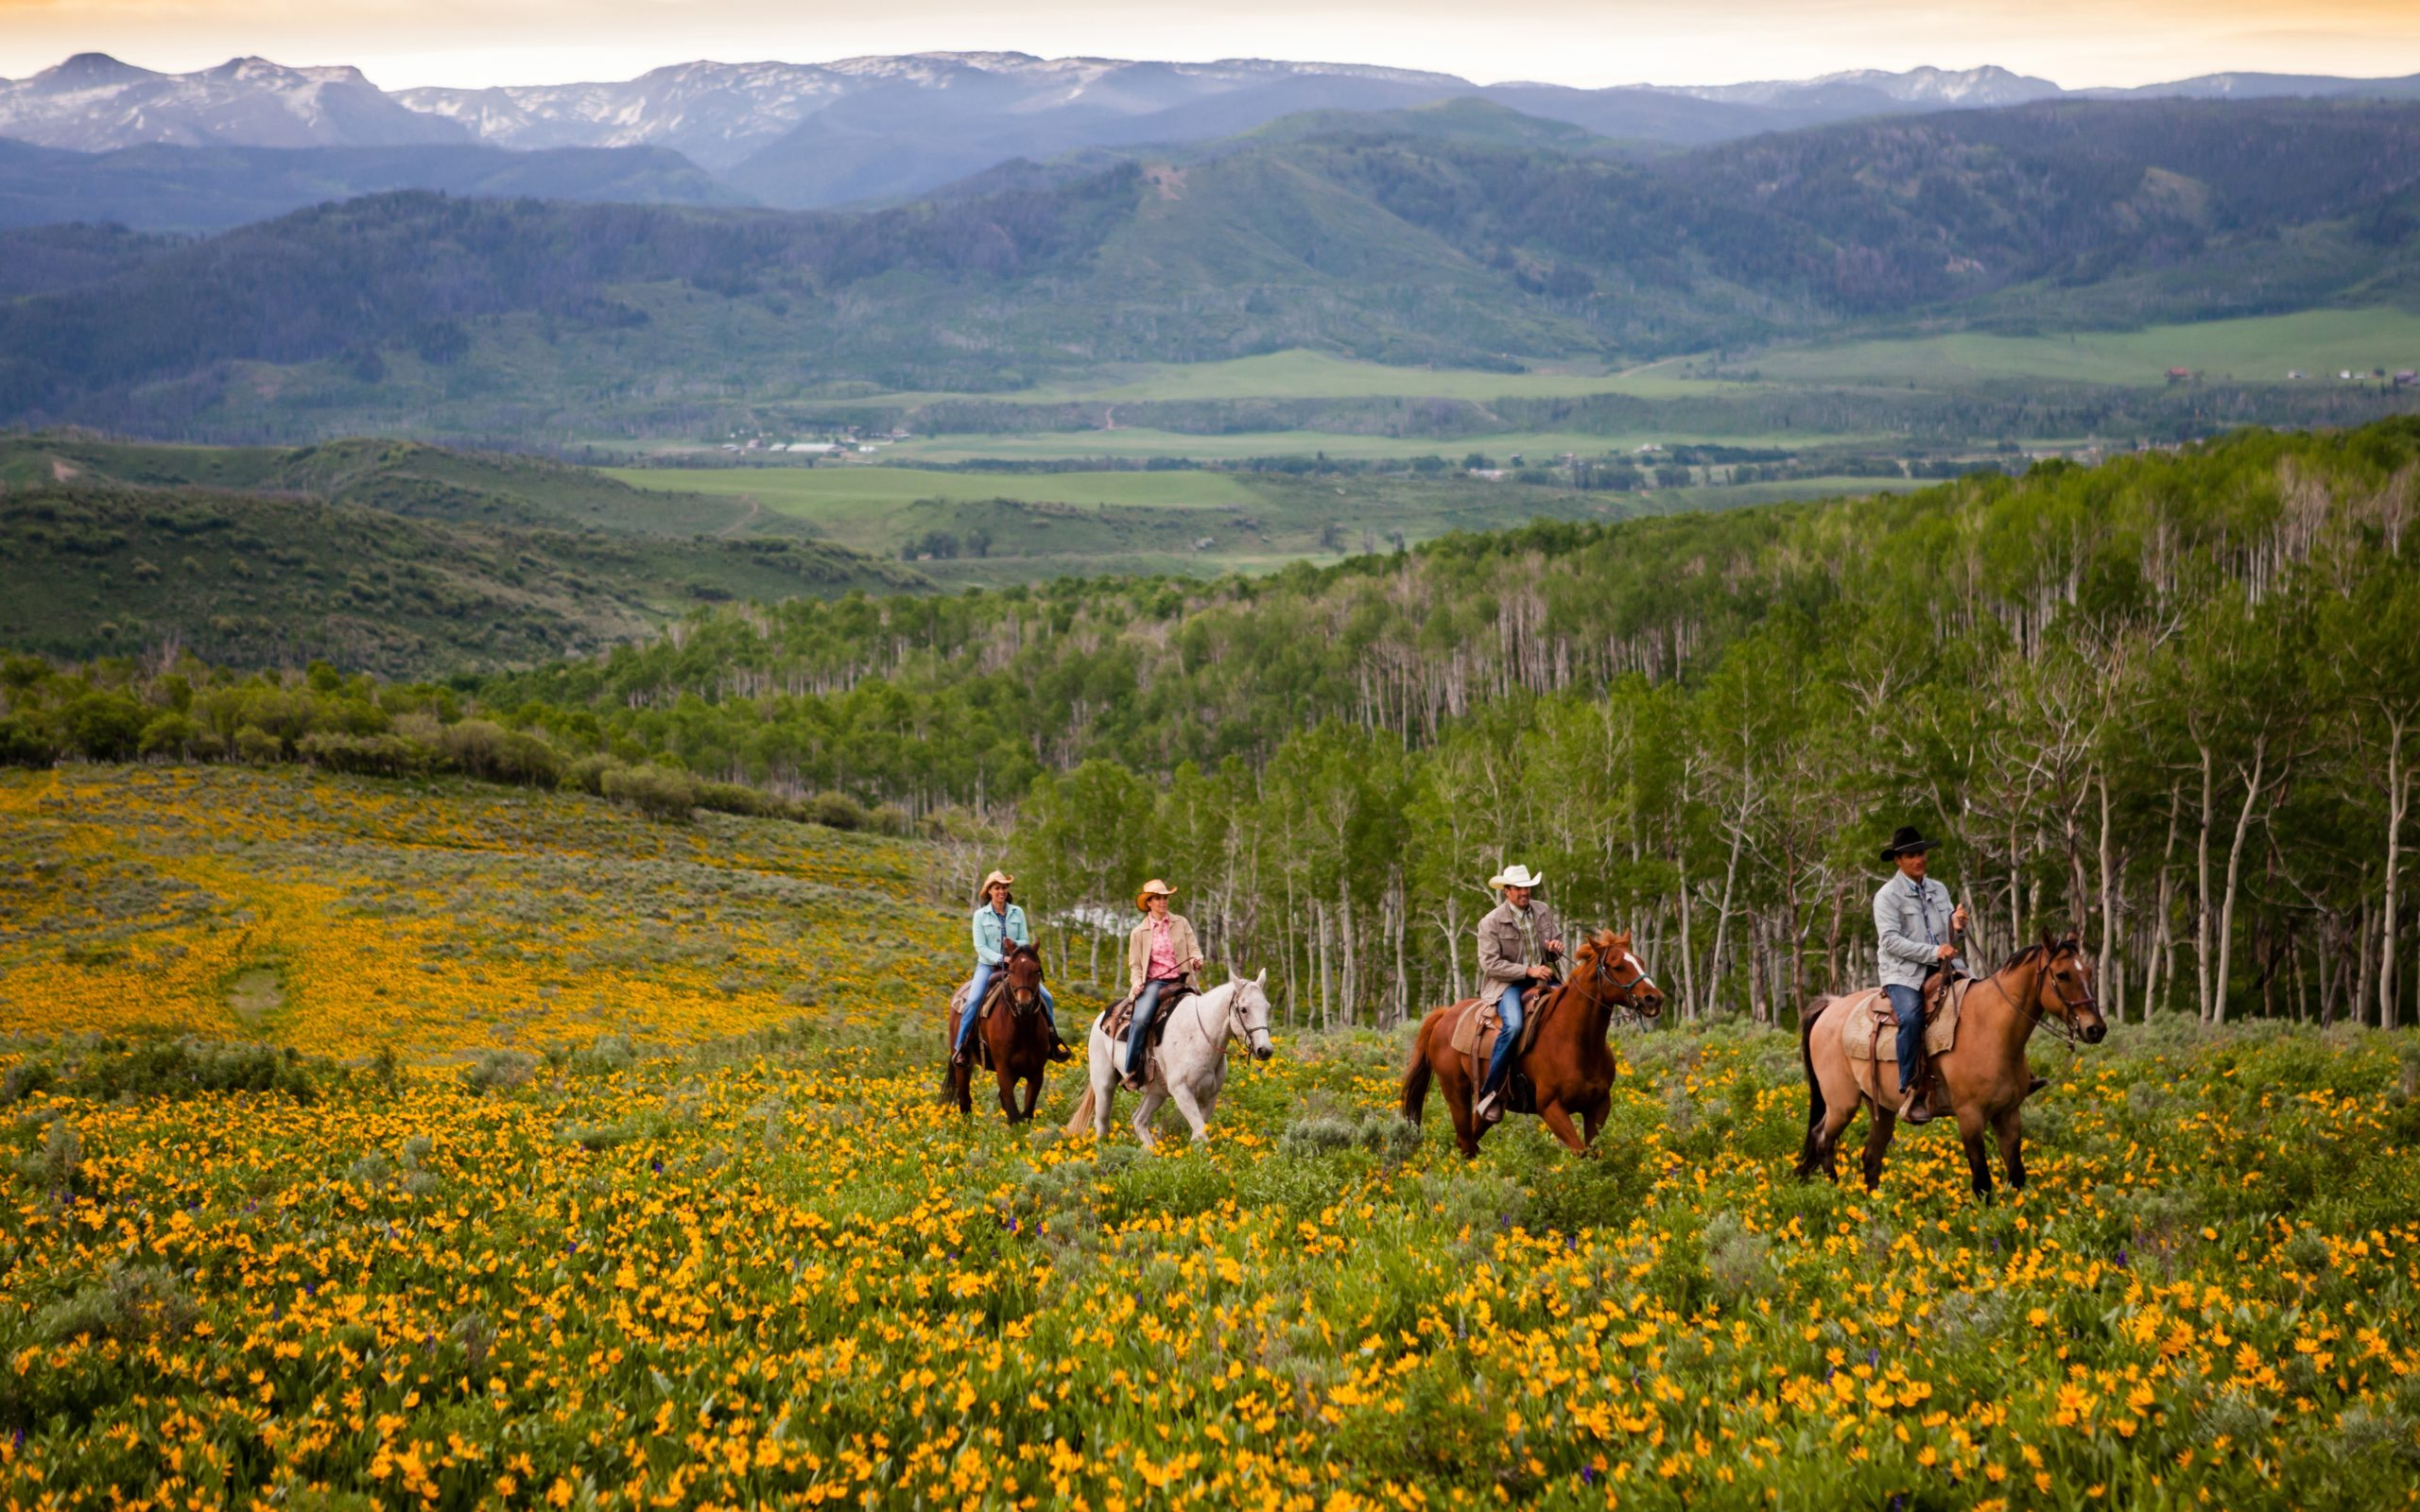 Horse riding through Montana's meadows